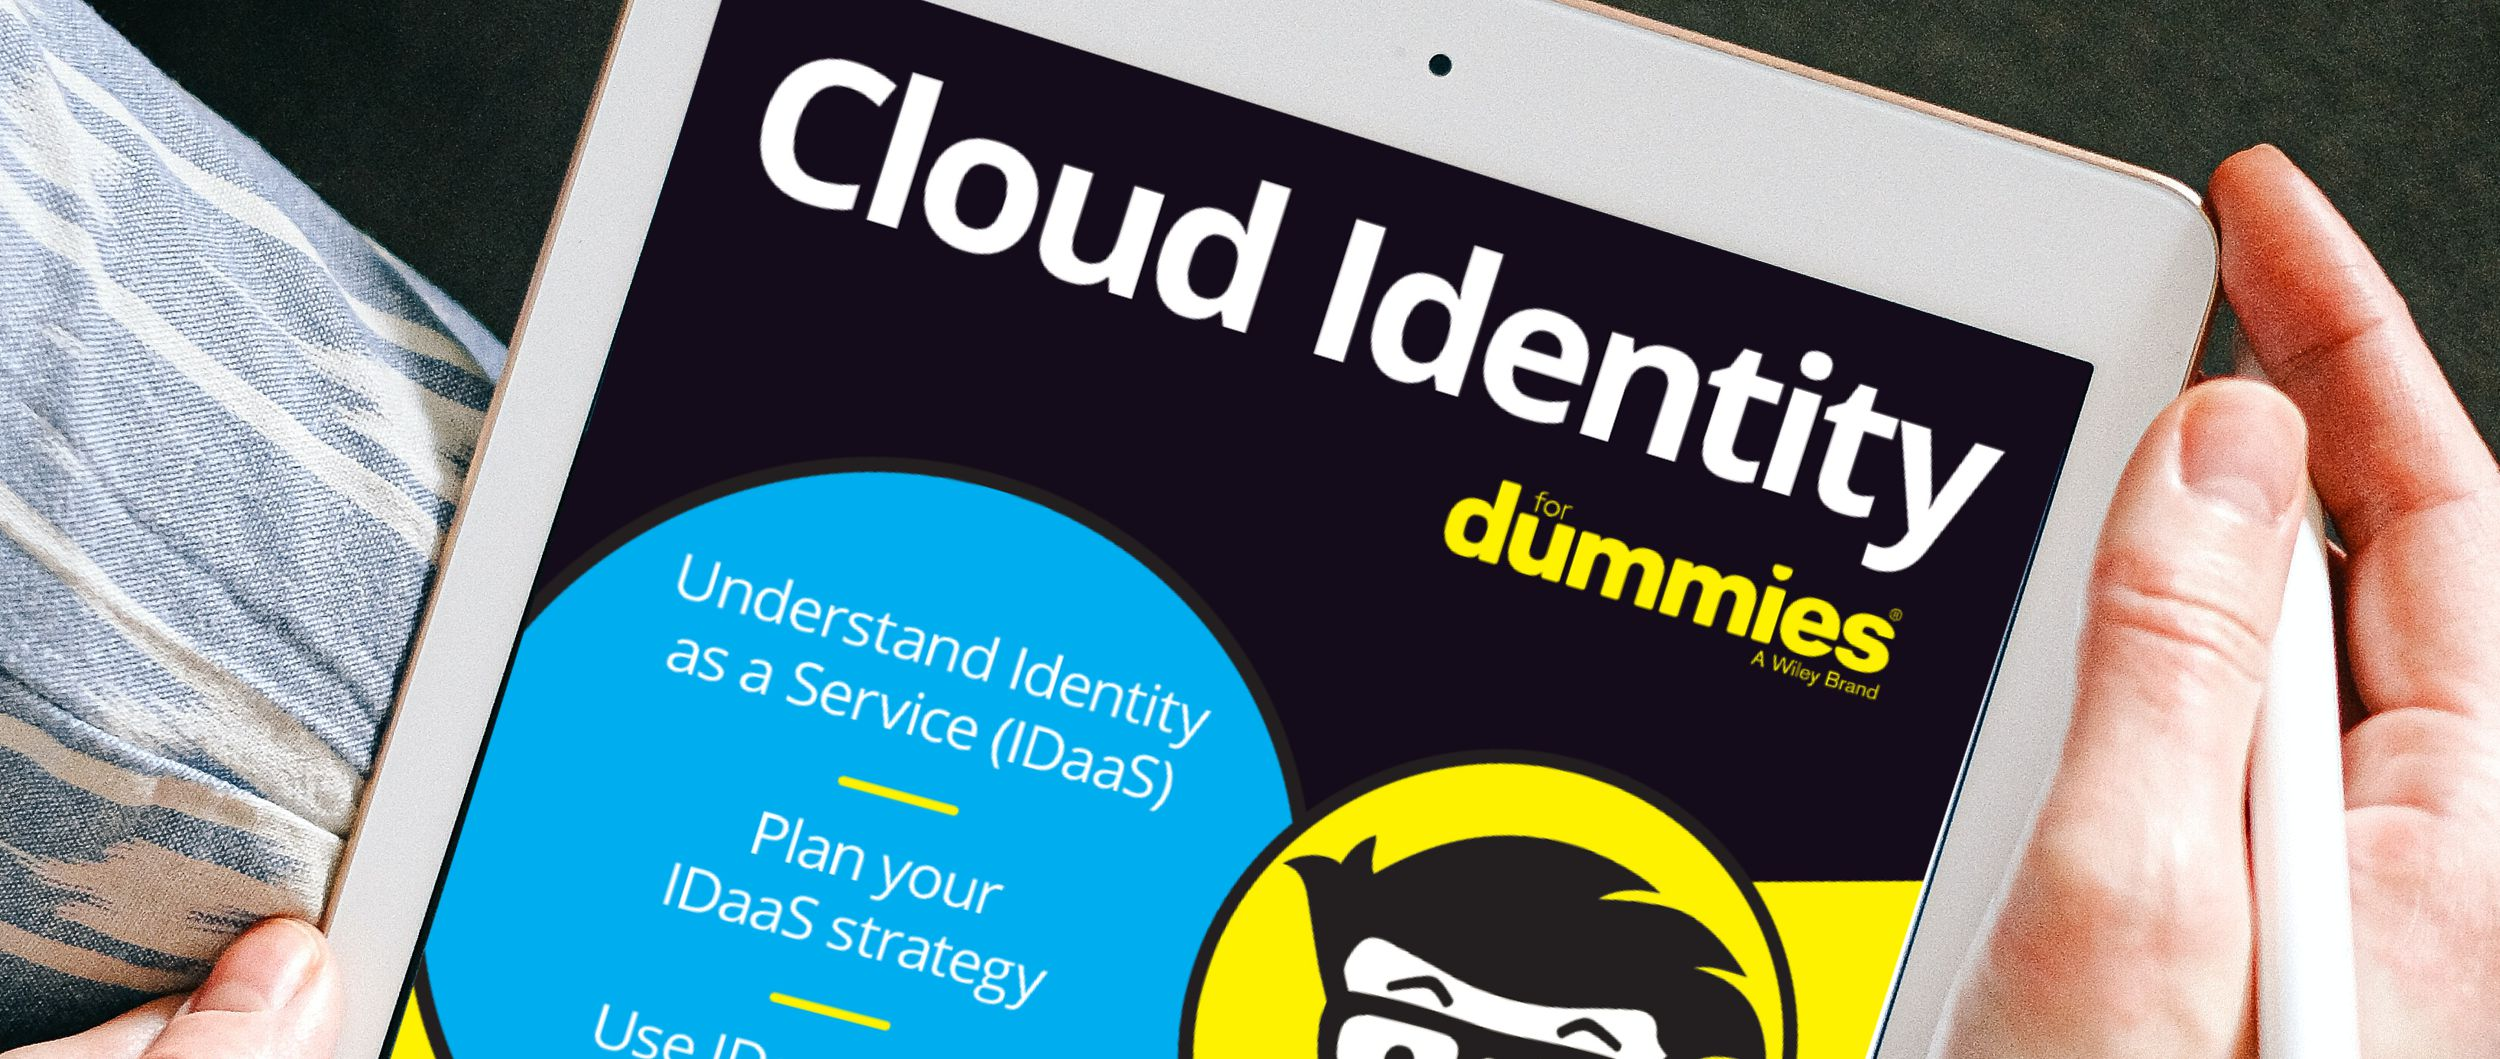 Cloud Identity for Dummies